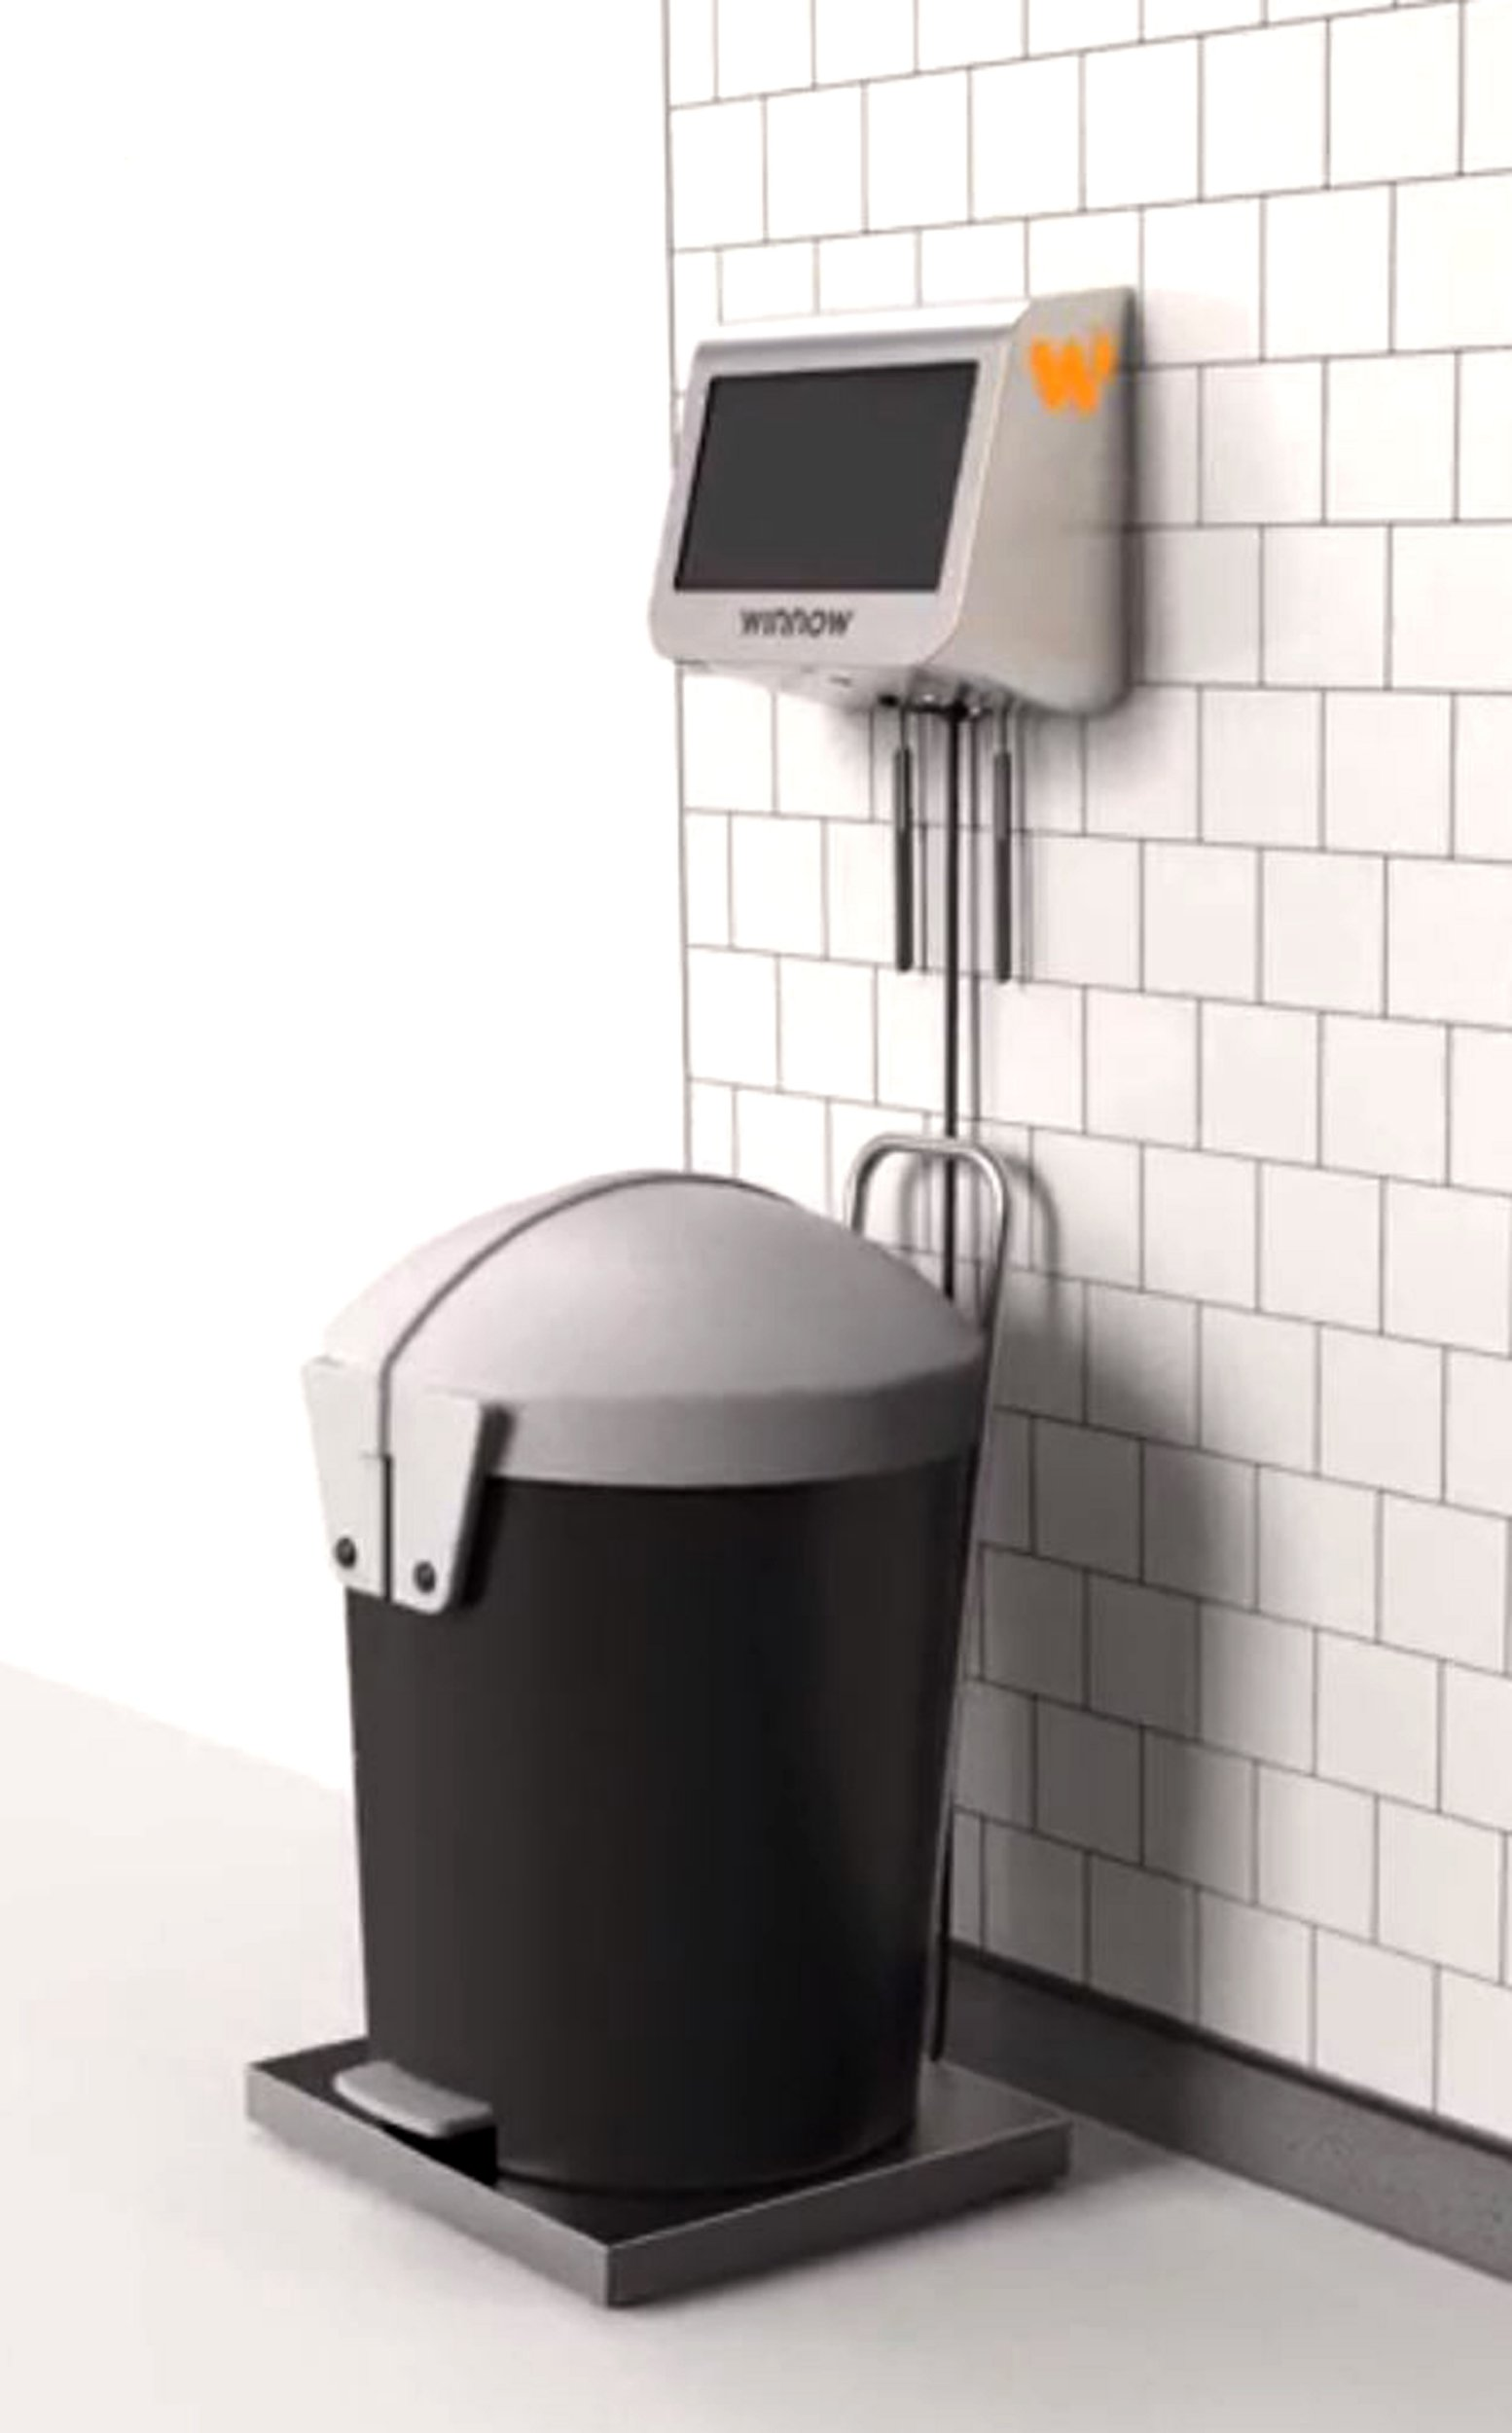 Artificially intelligent bin aims to cut down on food waste